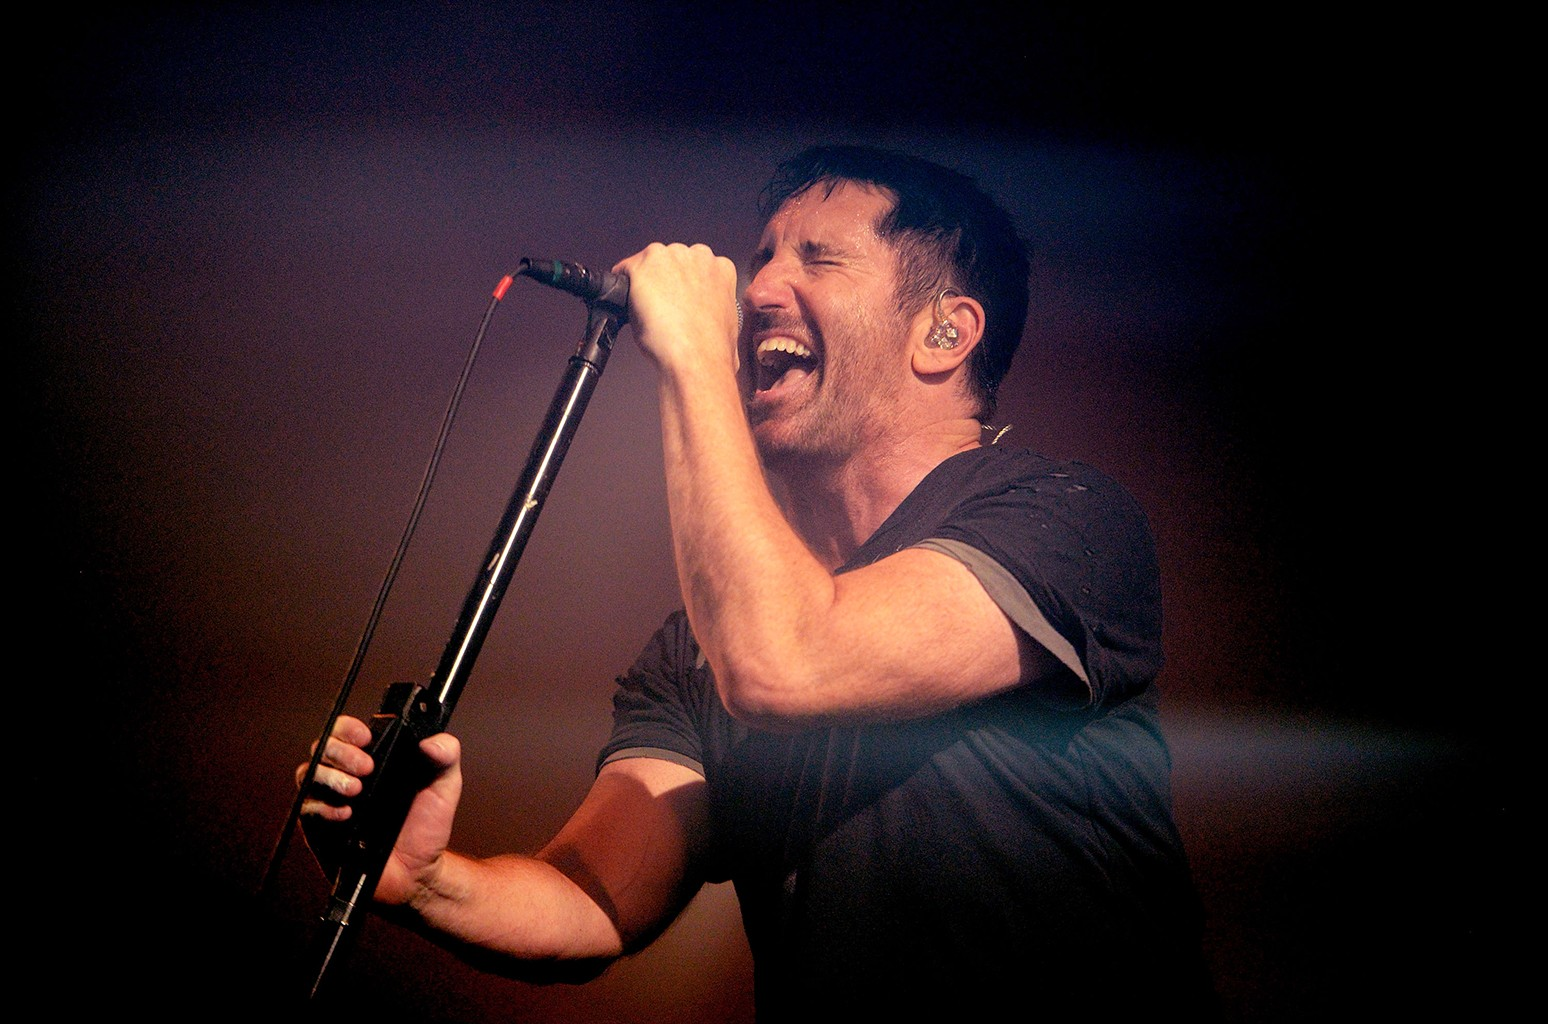 Trent Reznor of Nine Inch Nails performs during FYF Fest on July 23, 2017 in Los Angeles.